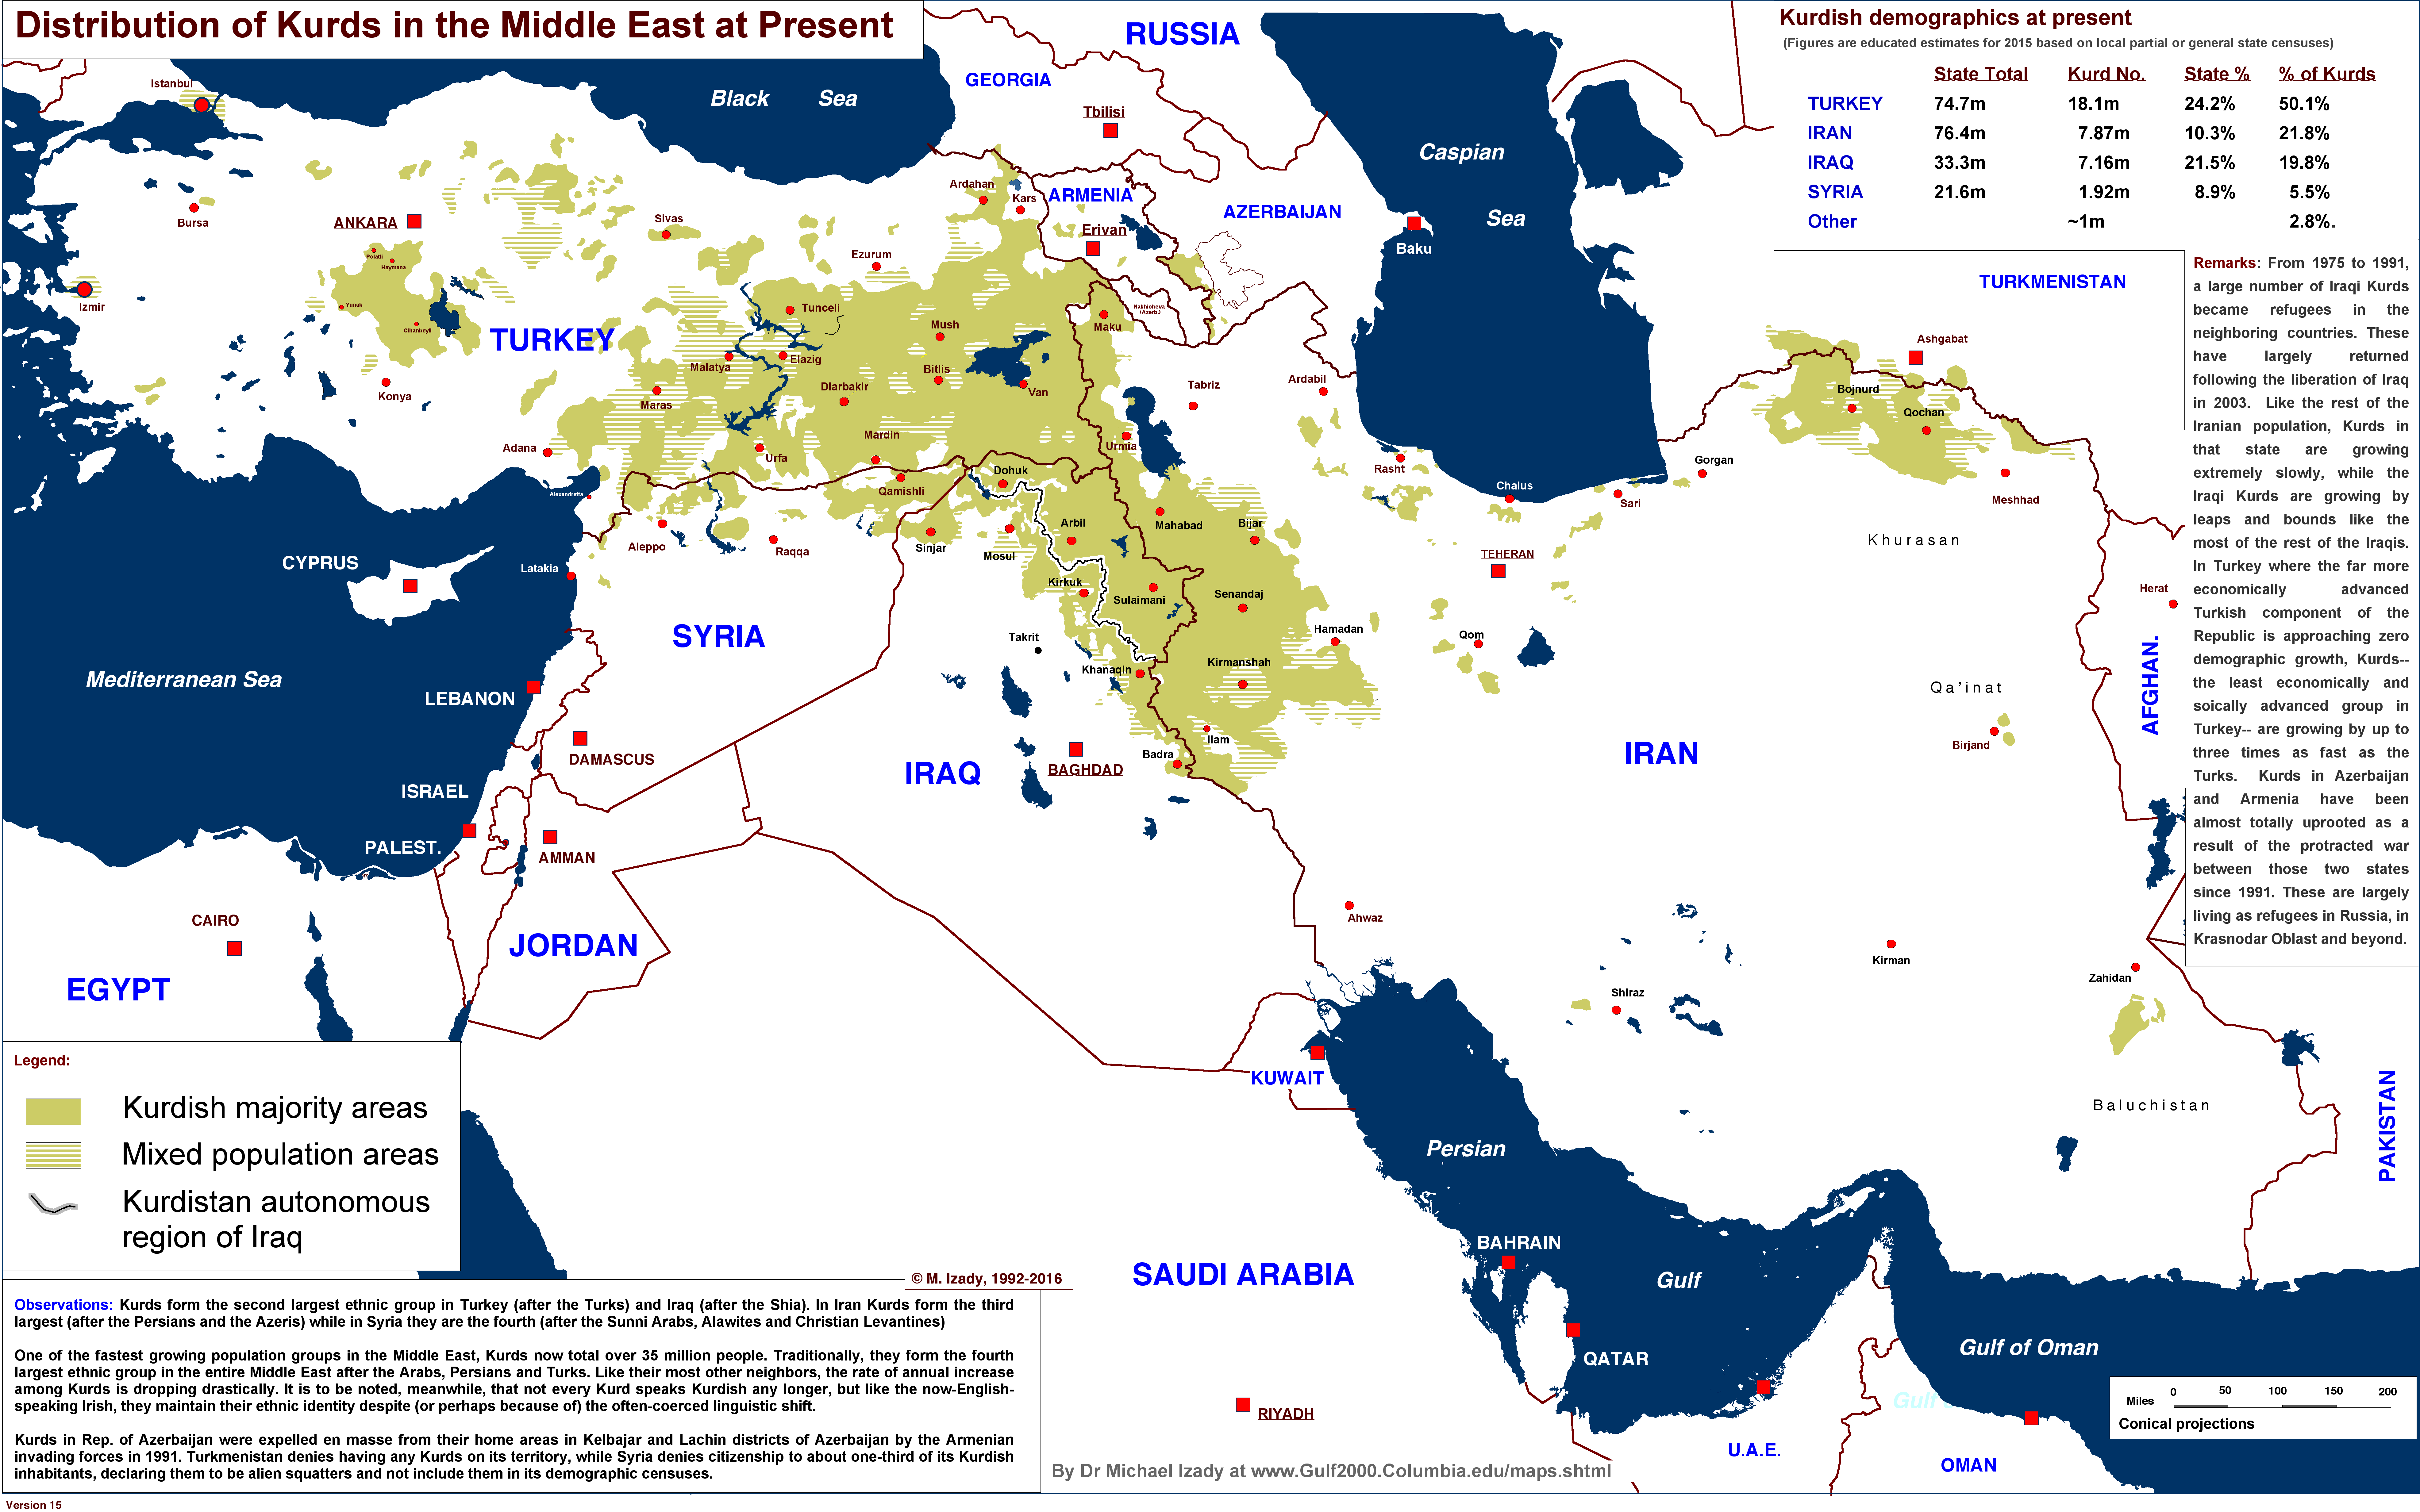 Distribution of Kurds in the Middle East by M Izady #map ... on